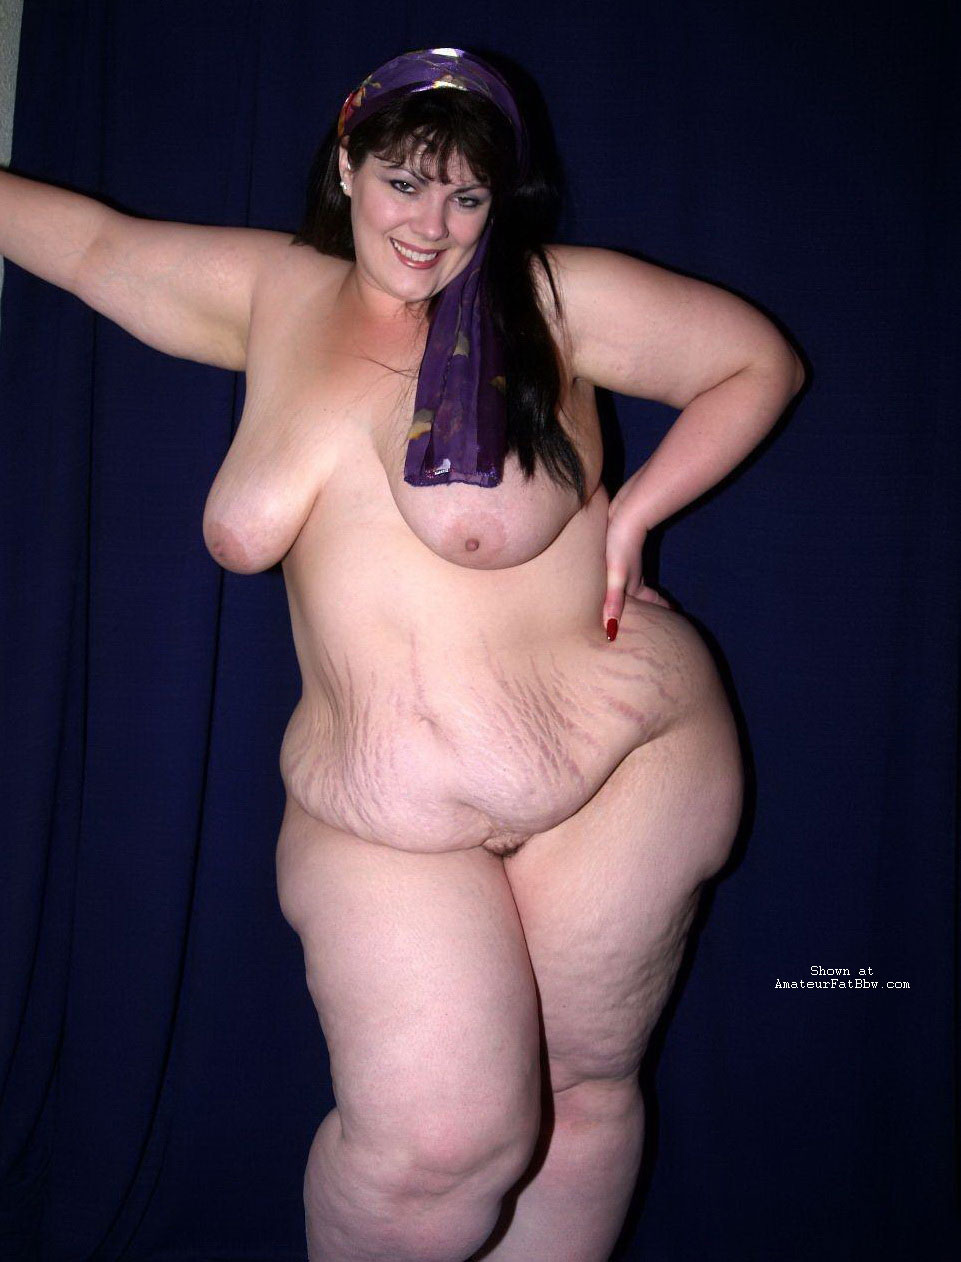 Naked Picture Of Girl Fat